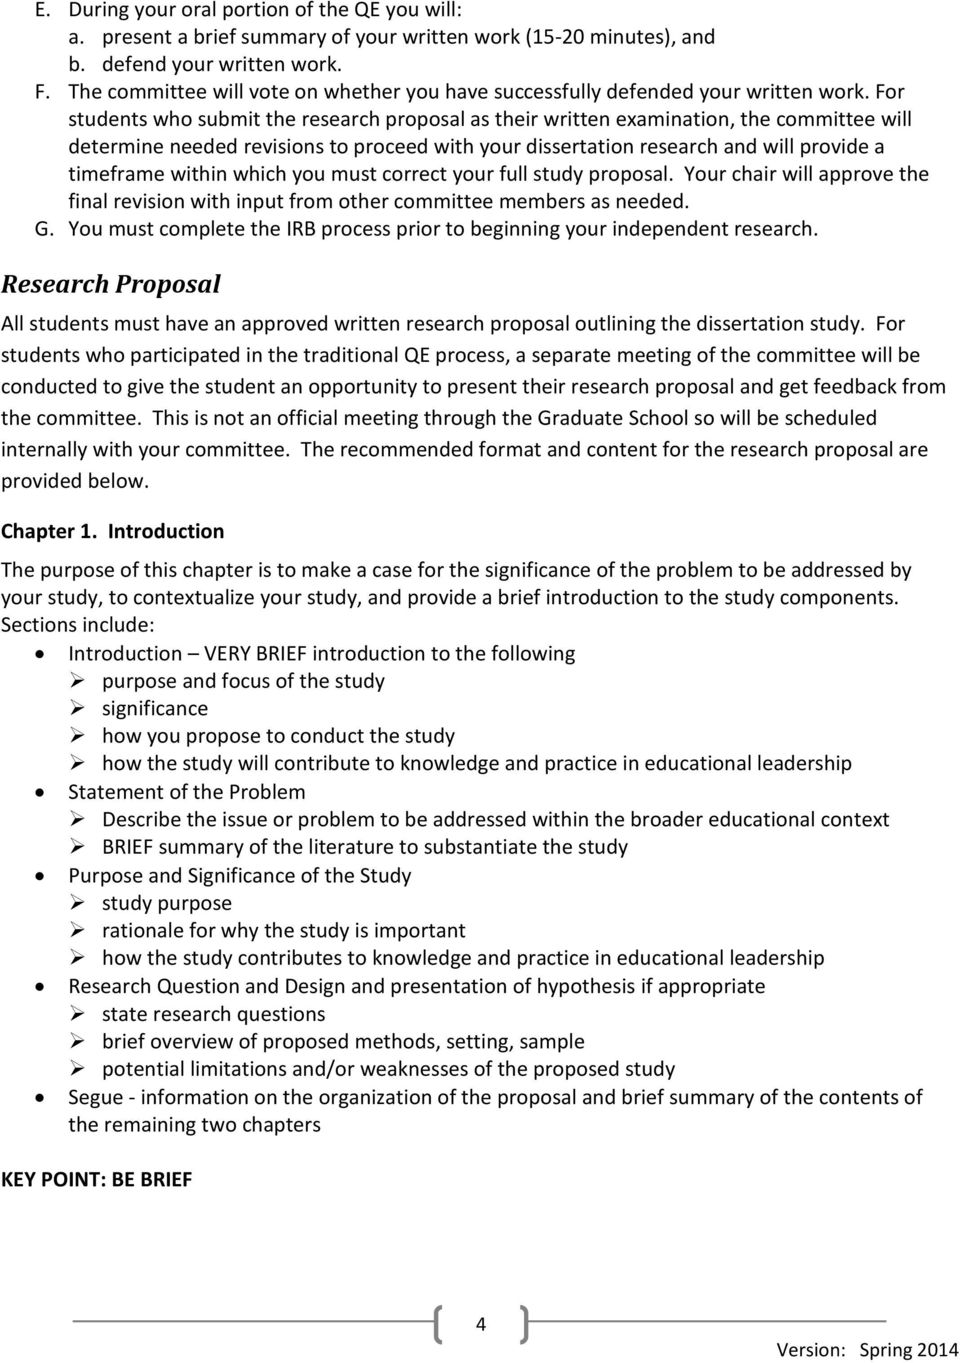 For students who submit the research proposal as their written examination, the committee will determine needed revisions to proceed with your dissertation research and will provide a timeframe